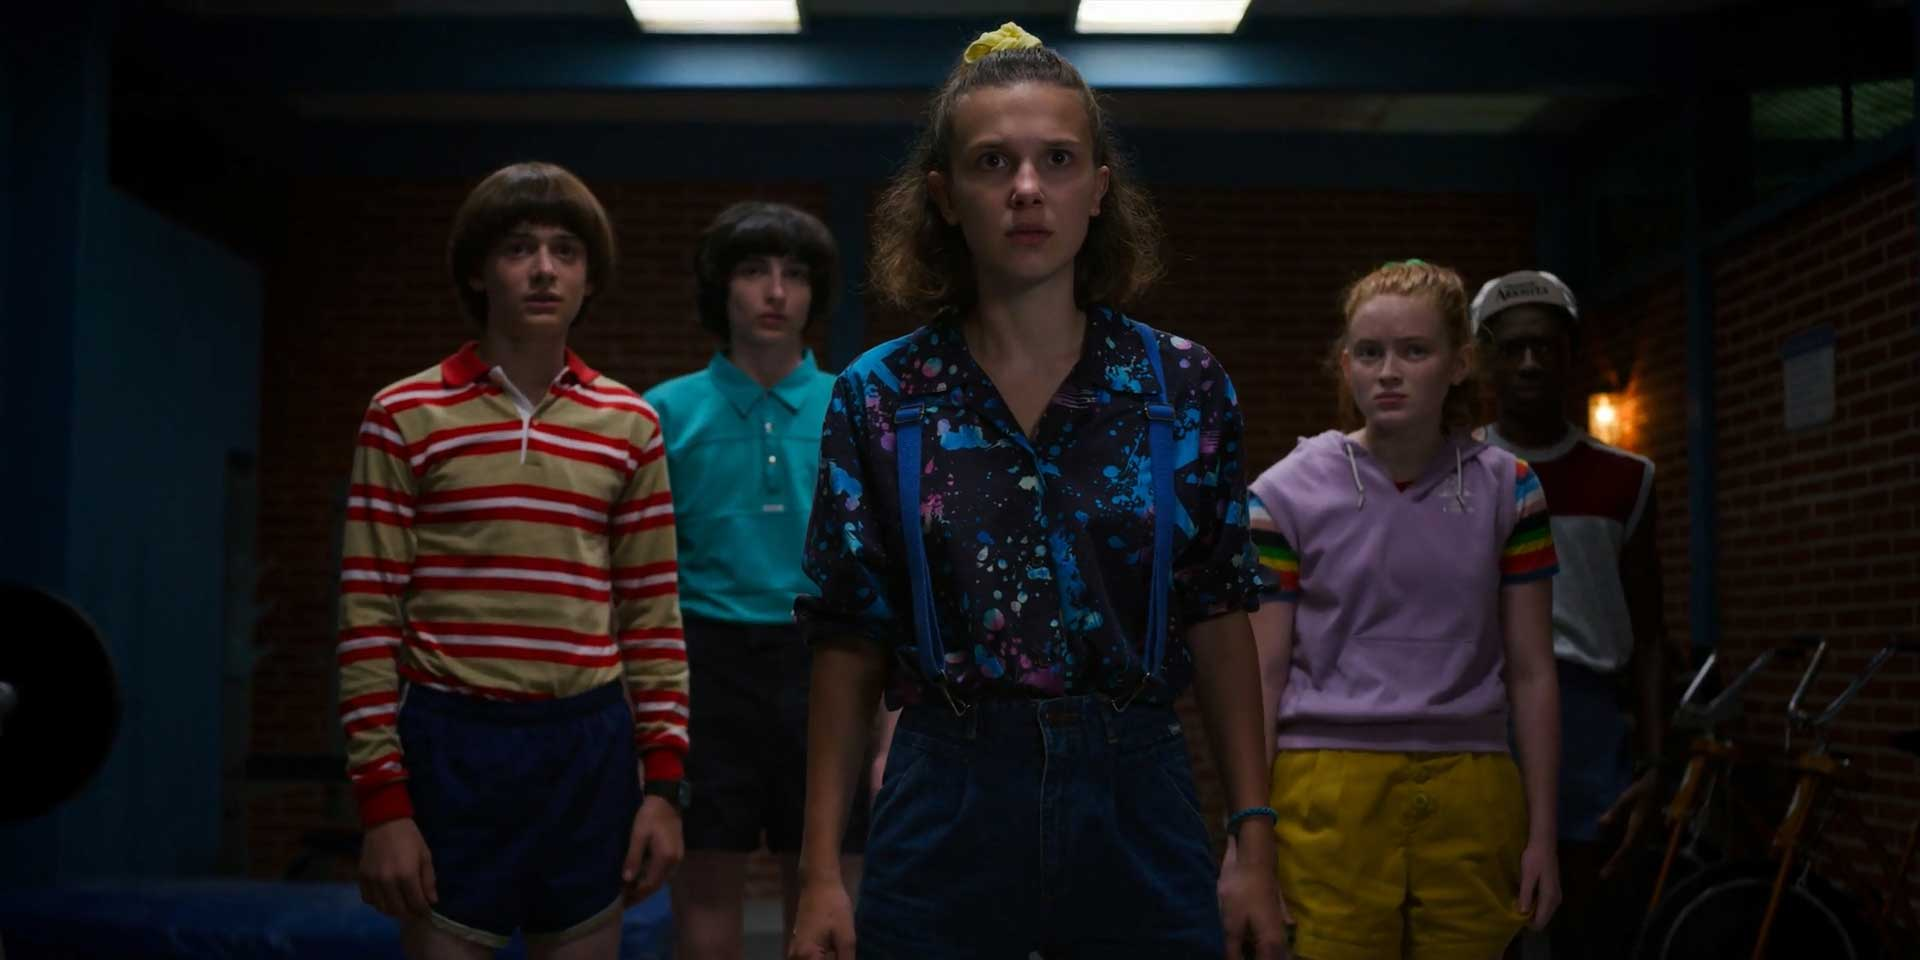 Stranger Things Season 3 Episode 4 Review: The Sauna Test